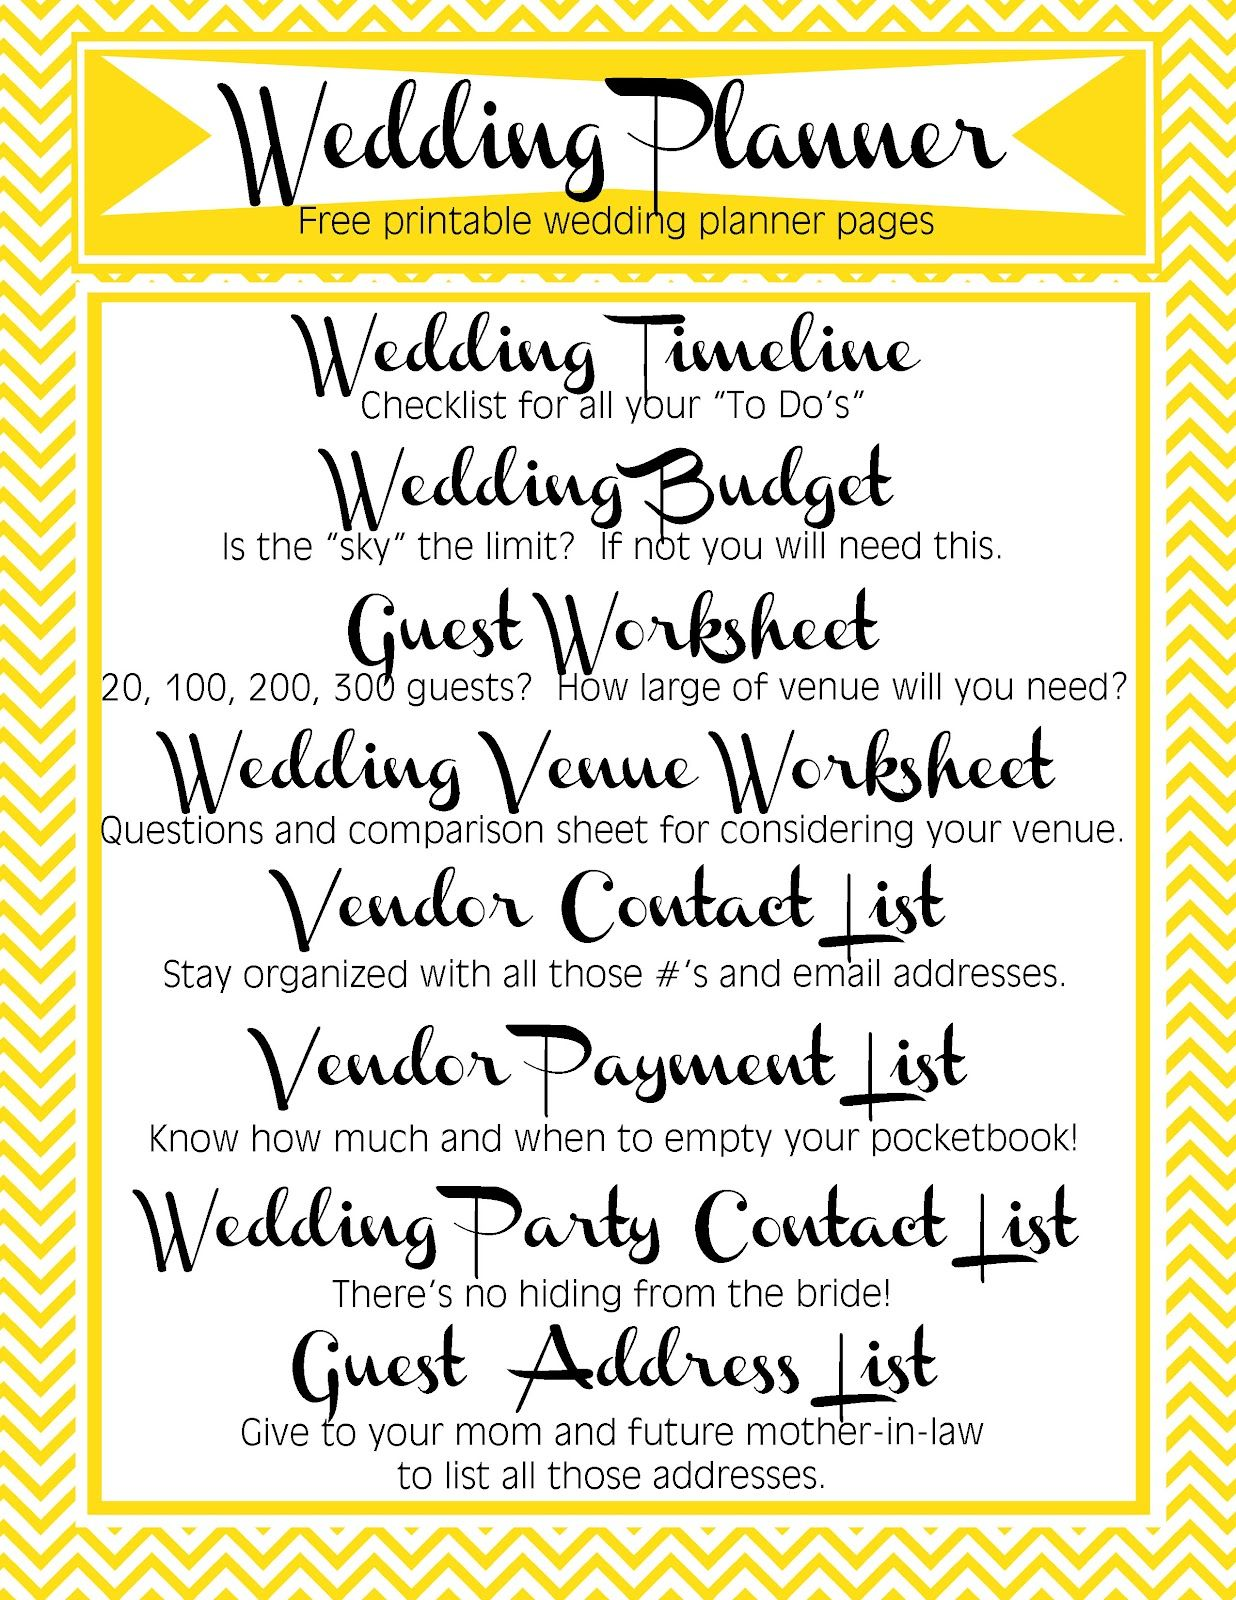 Free wedding planner template - Wedding Planner Template Pages Printable Diy Free Timeline Budget Guest Lists Venue Worksheet Vendor Contact And Payment List Wedding Party Contact List